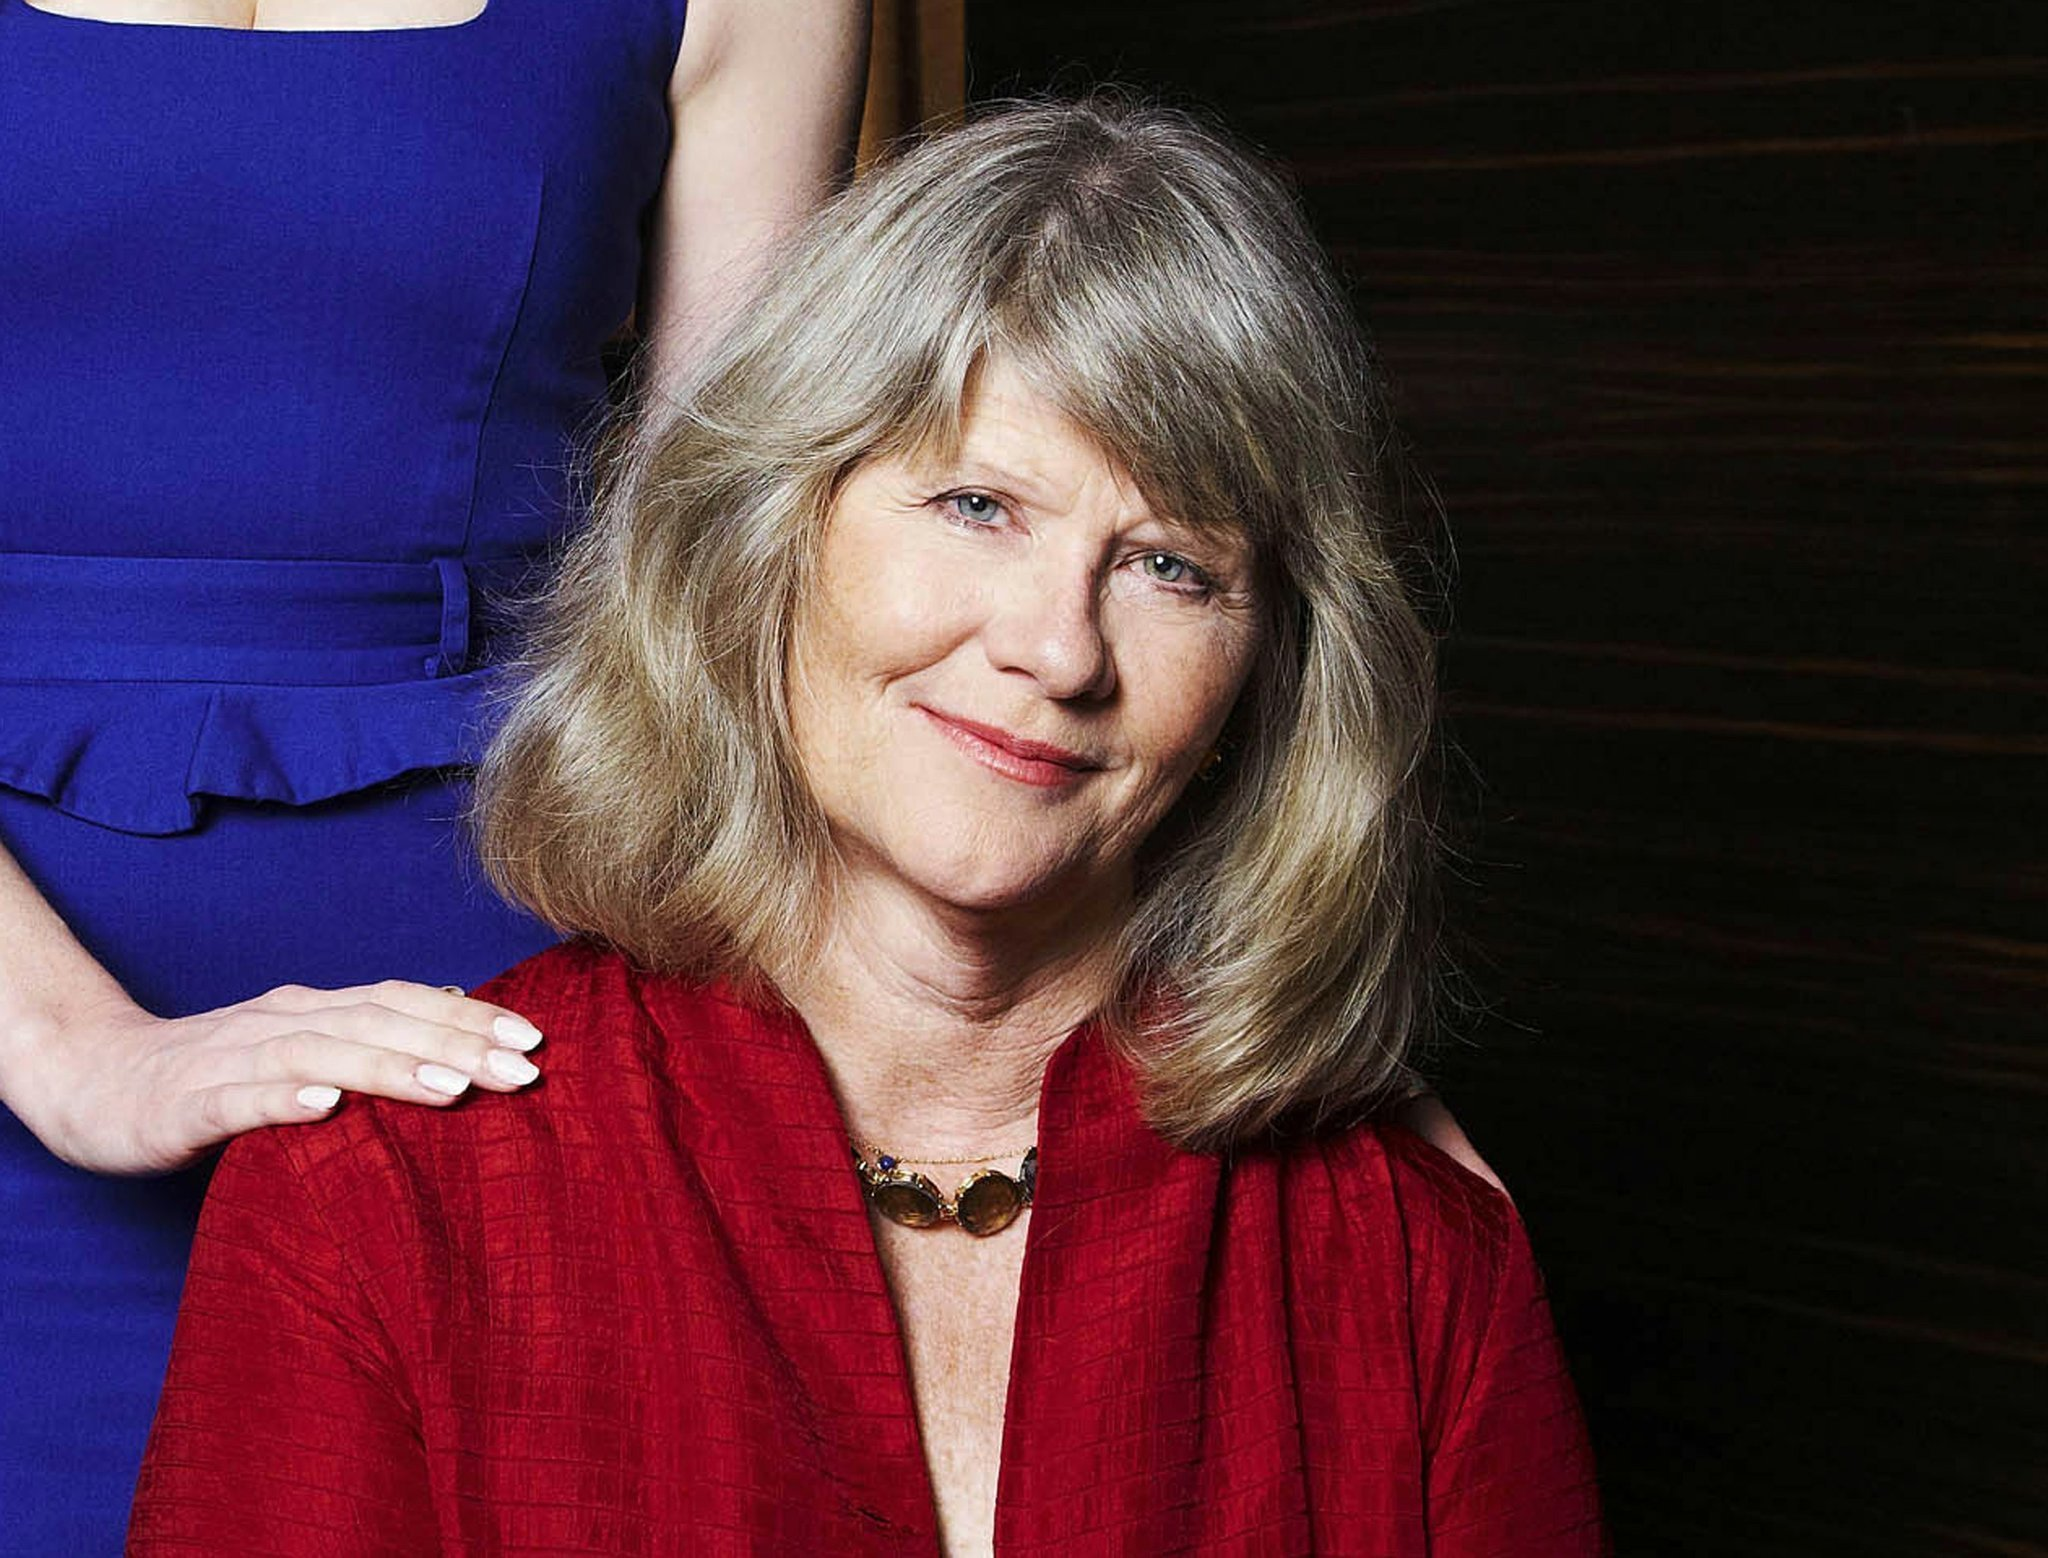 Judith Ivey nude (98 photos), Topless, Cleavage, Instagram, swimsuit 2019